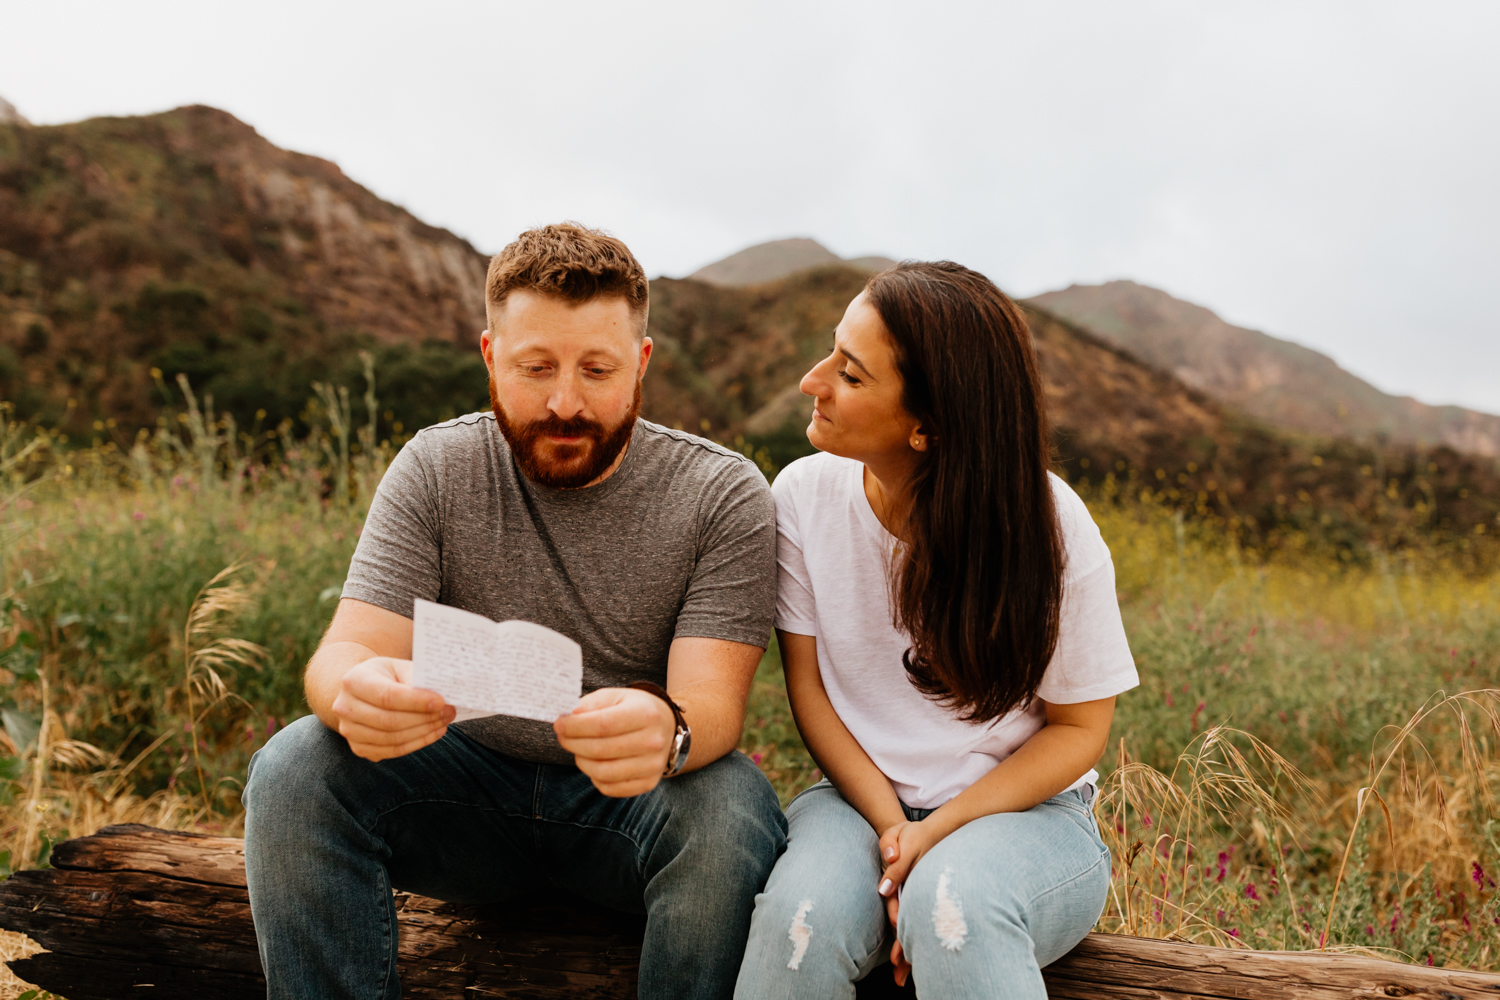 Malibu Creek State Park Engagement | Malibu Wedding Photographer | Los Angeles Wedding Photographer | Palm Springs Wedding Photographer | Tida Svy | www.tidasvy.com